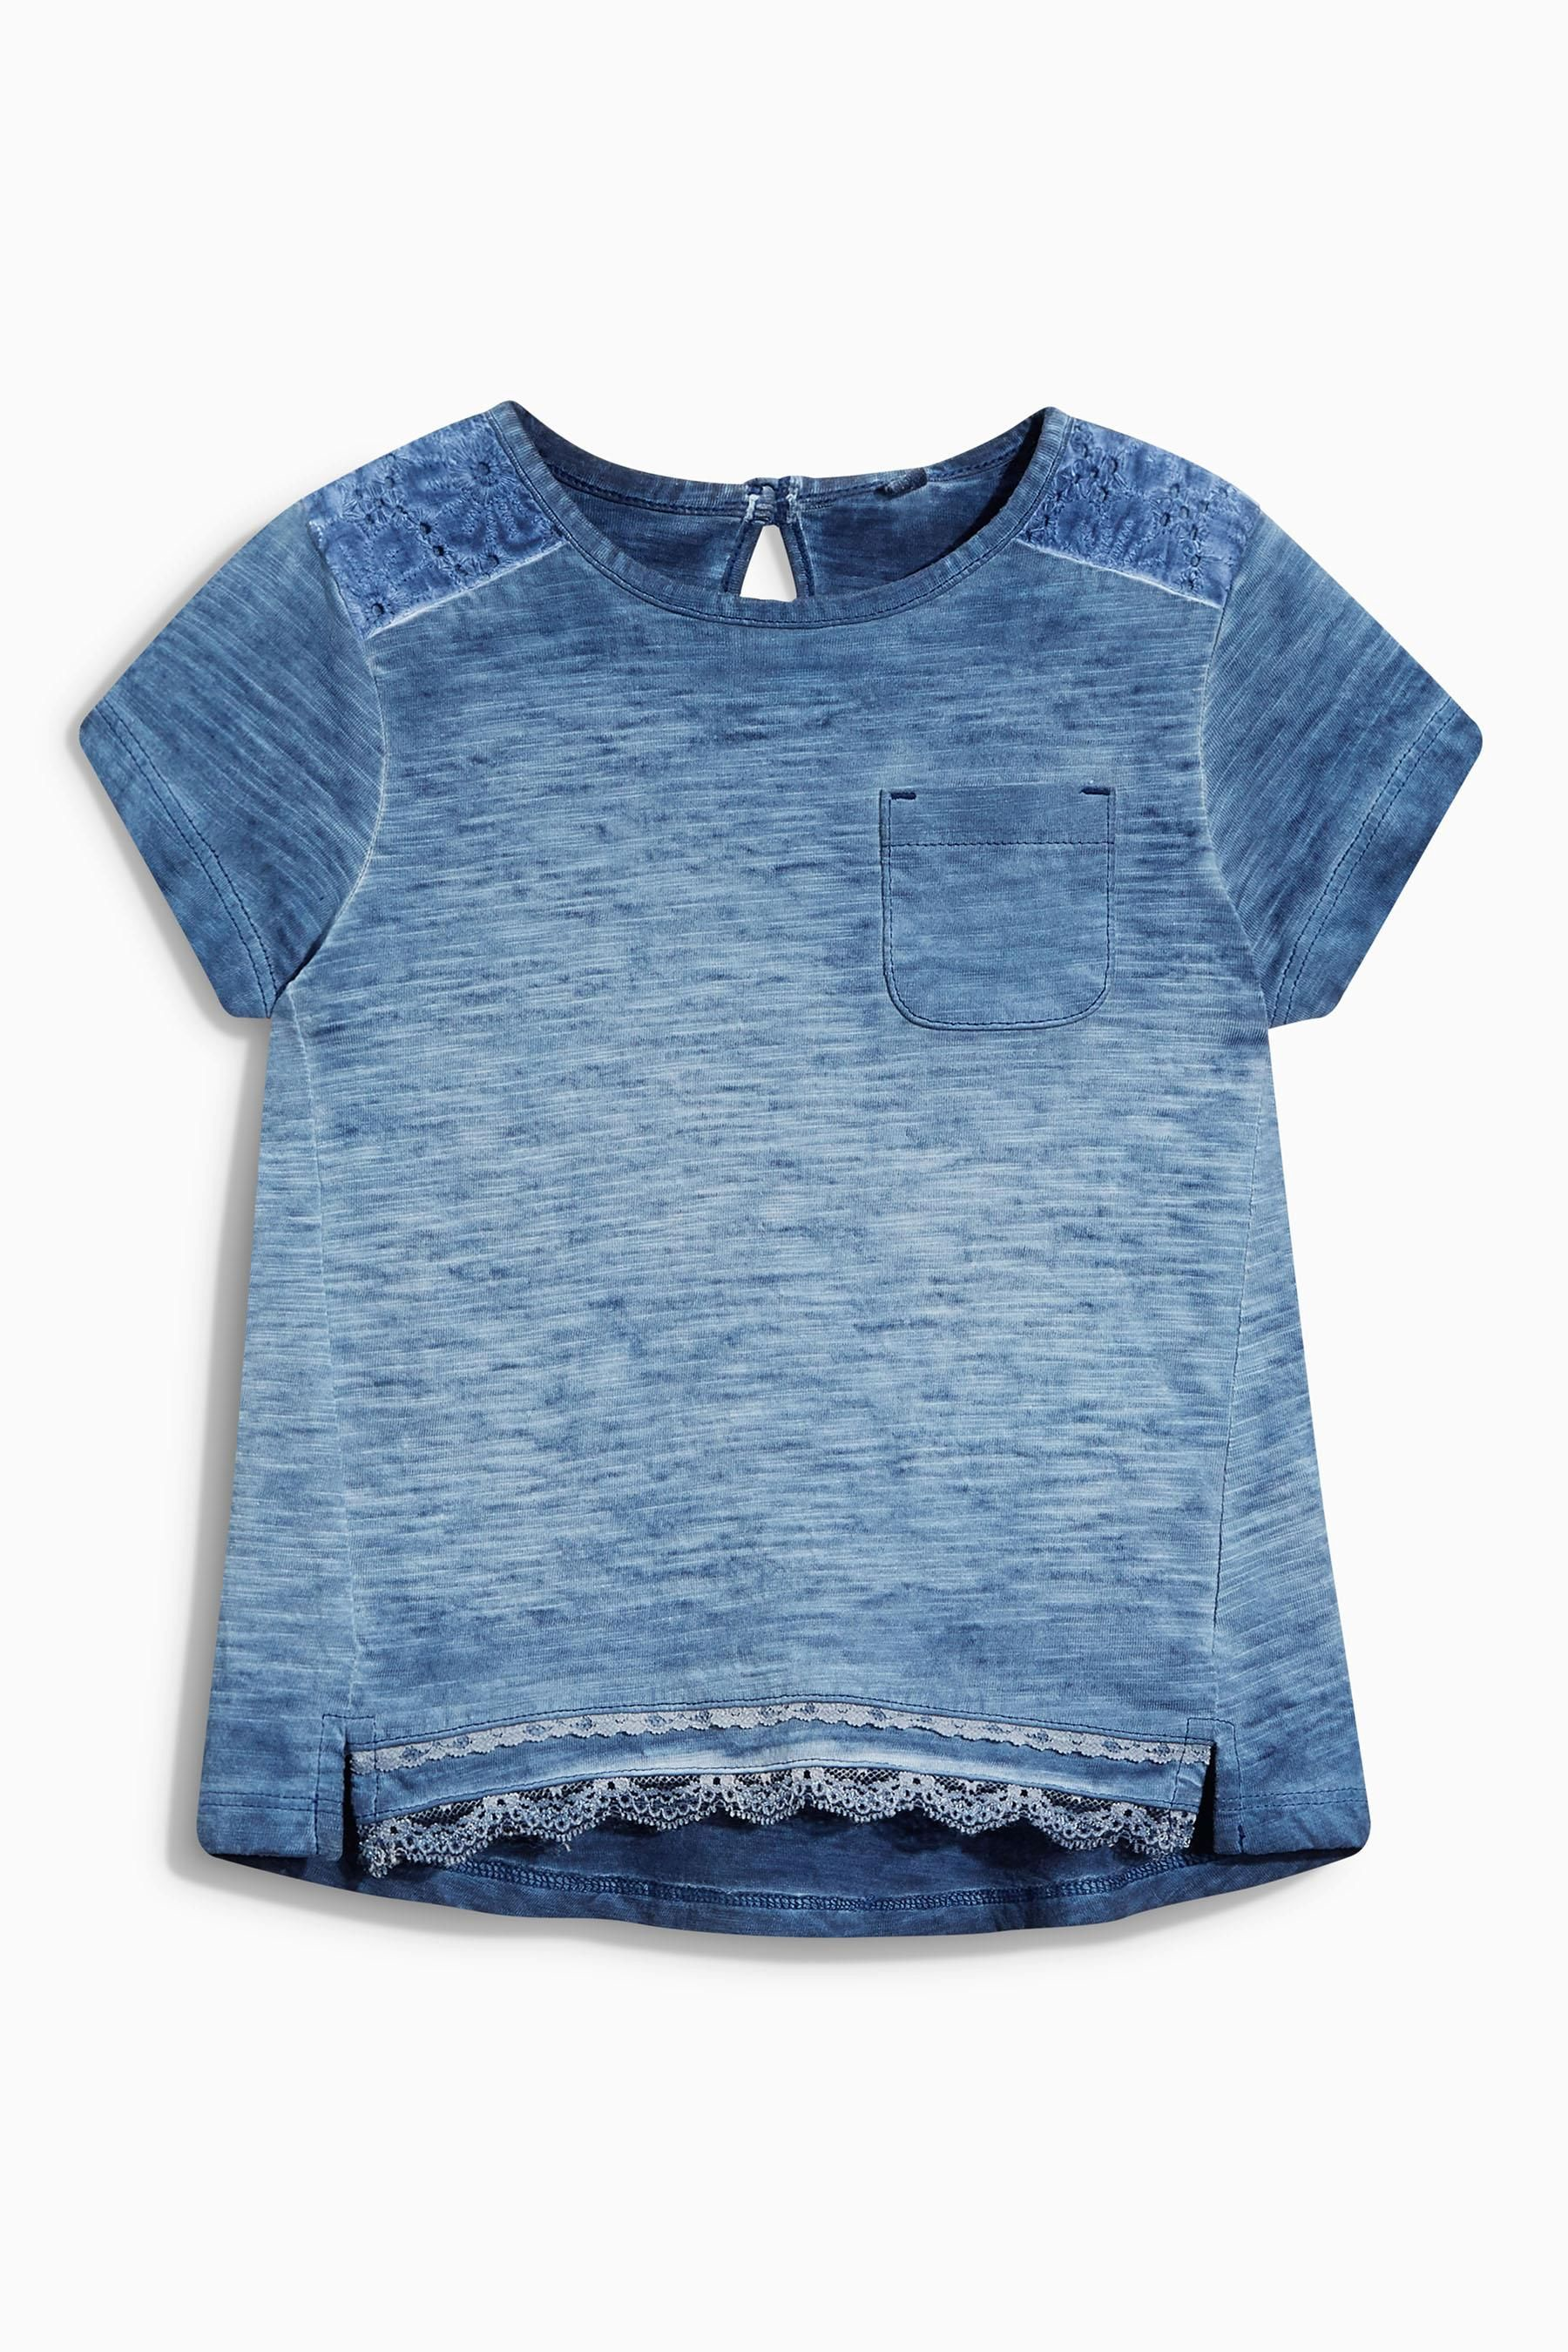 750ec276d1a Buy Navy Lace T-Shirt (3mths-6yrs) from the Next UK online shop ...